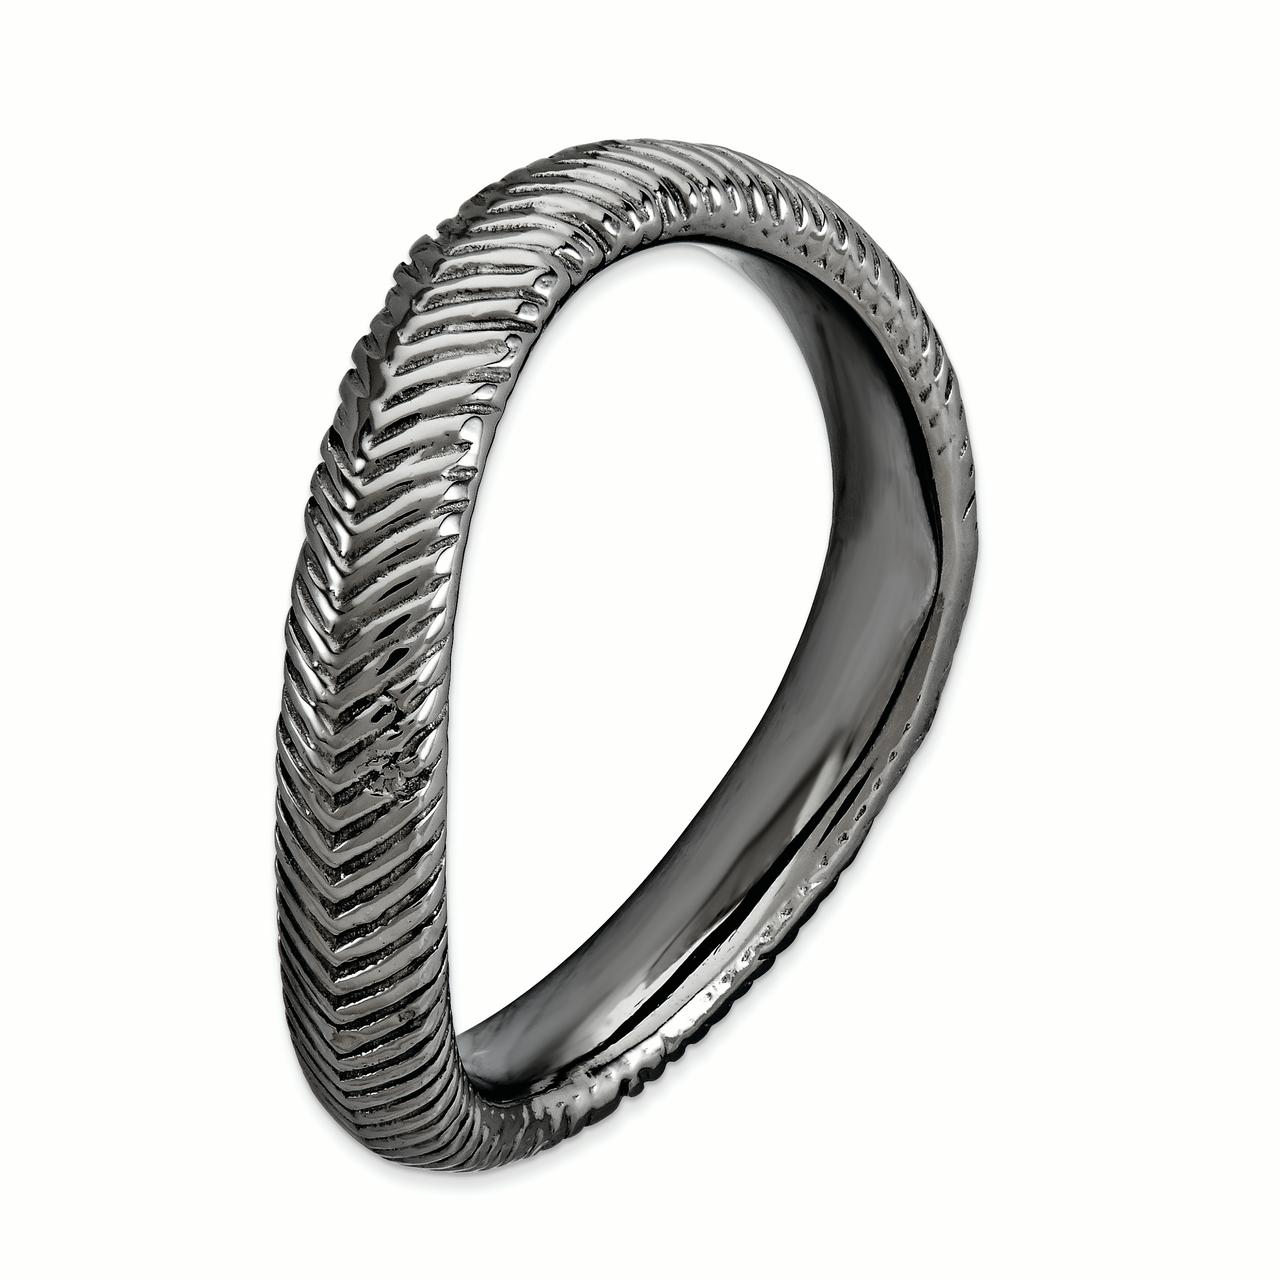 925 Sterling Silver Black Plate Wave Band Ring Size 9.00 Stackable Curved Fine Jewelry Gifts For Women For Her - image 2 de 3